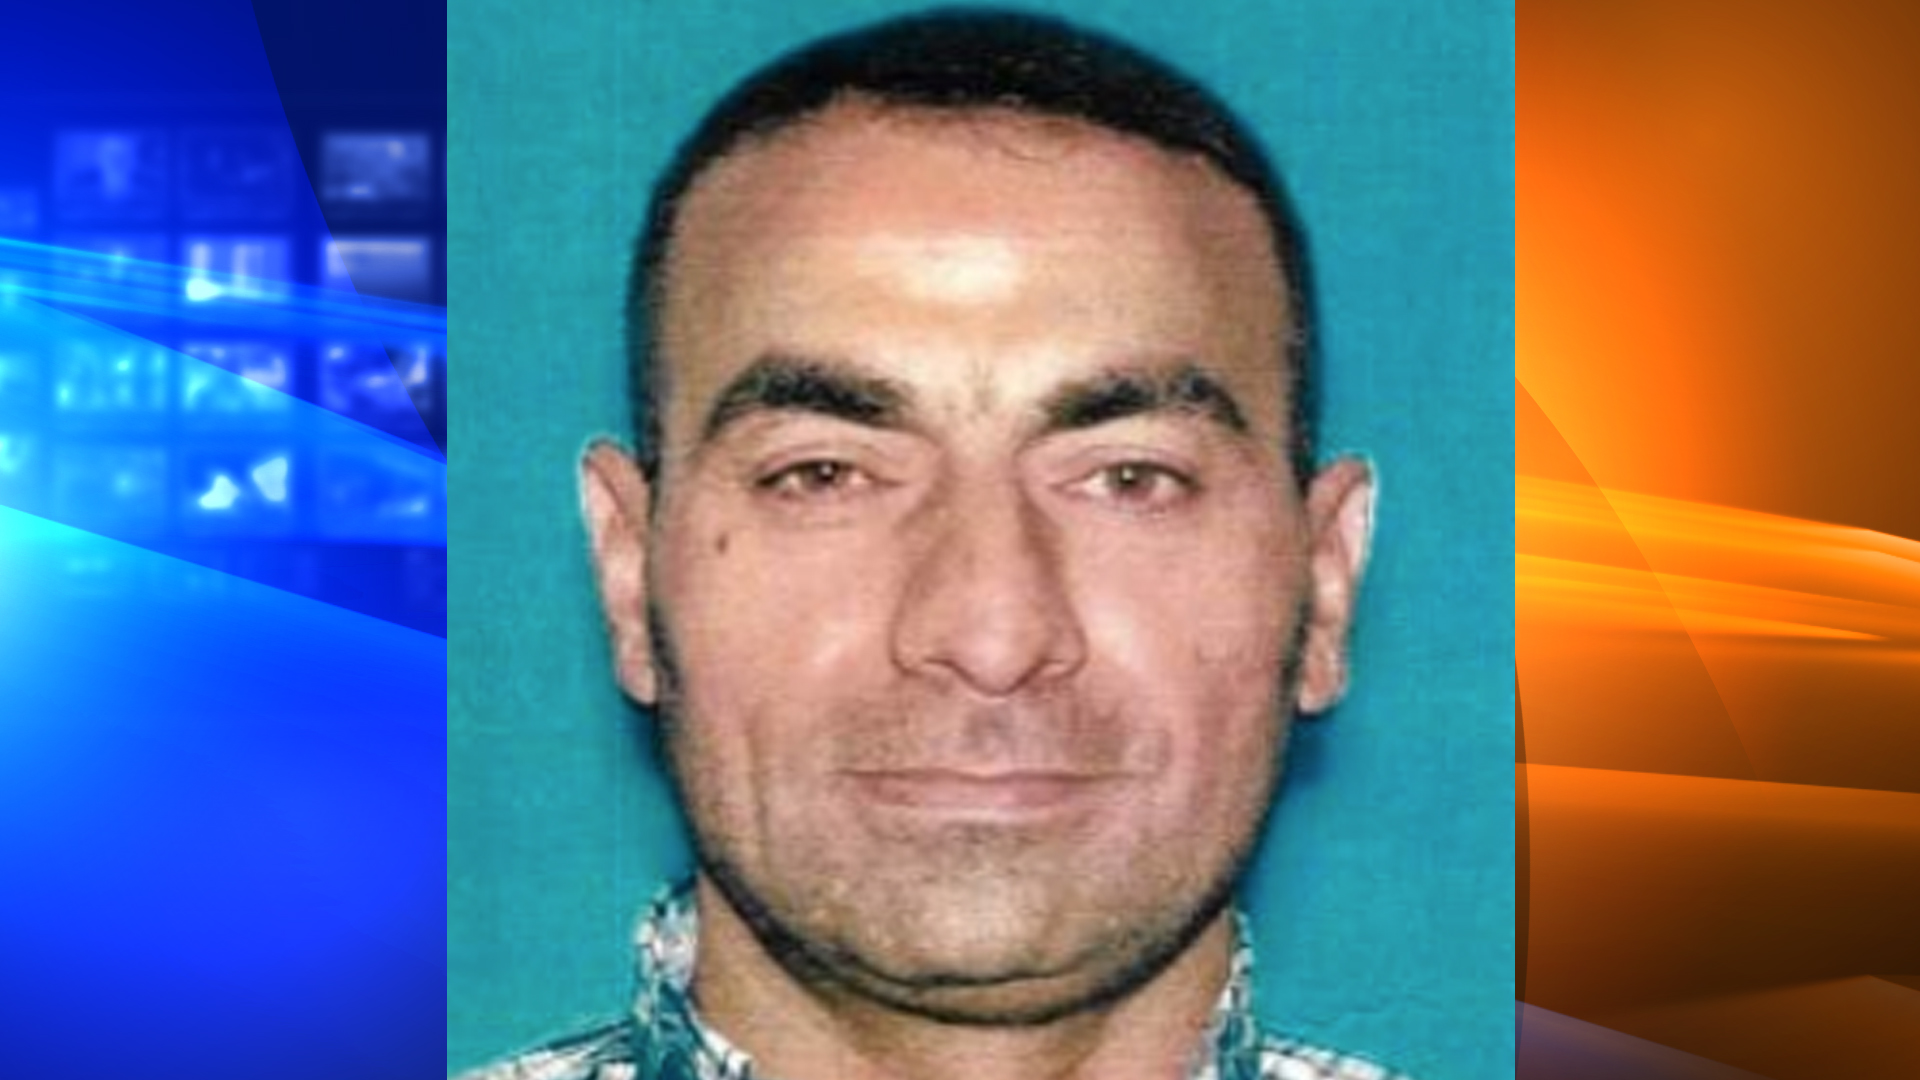 The U.S. Attorney's Office provided this image of Omar Ameen on Aug. 15, 2018.